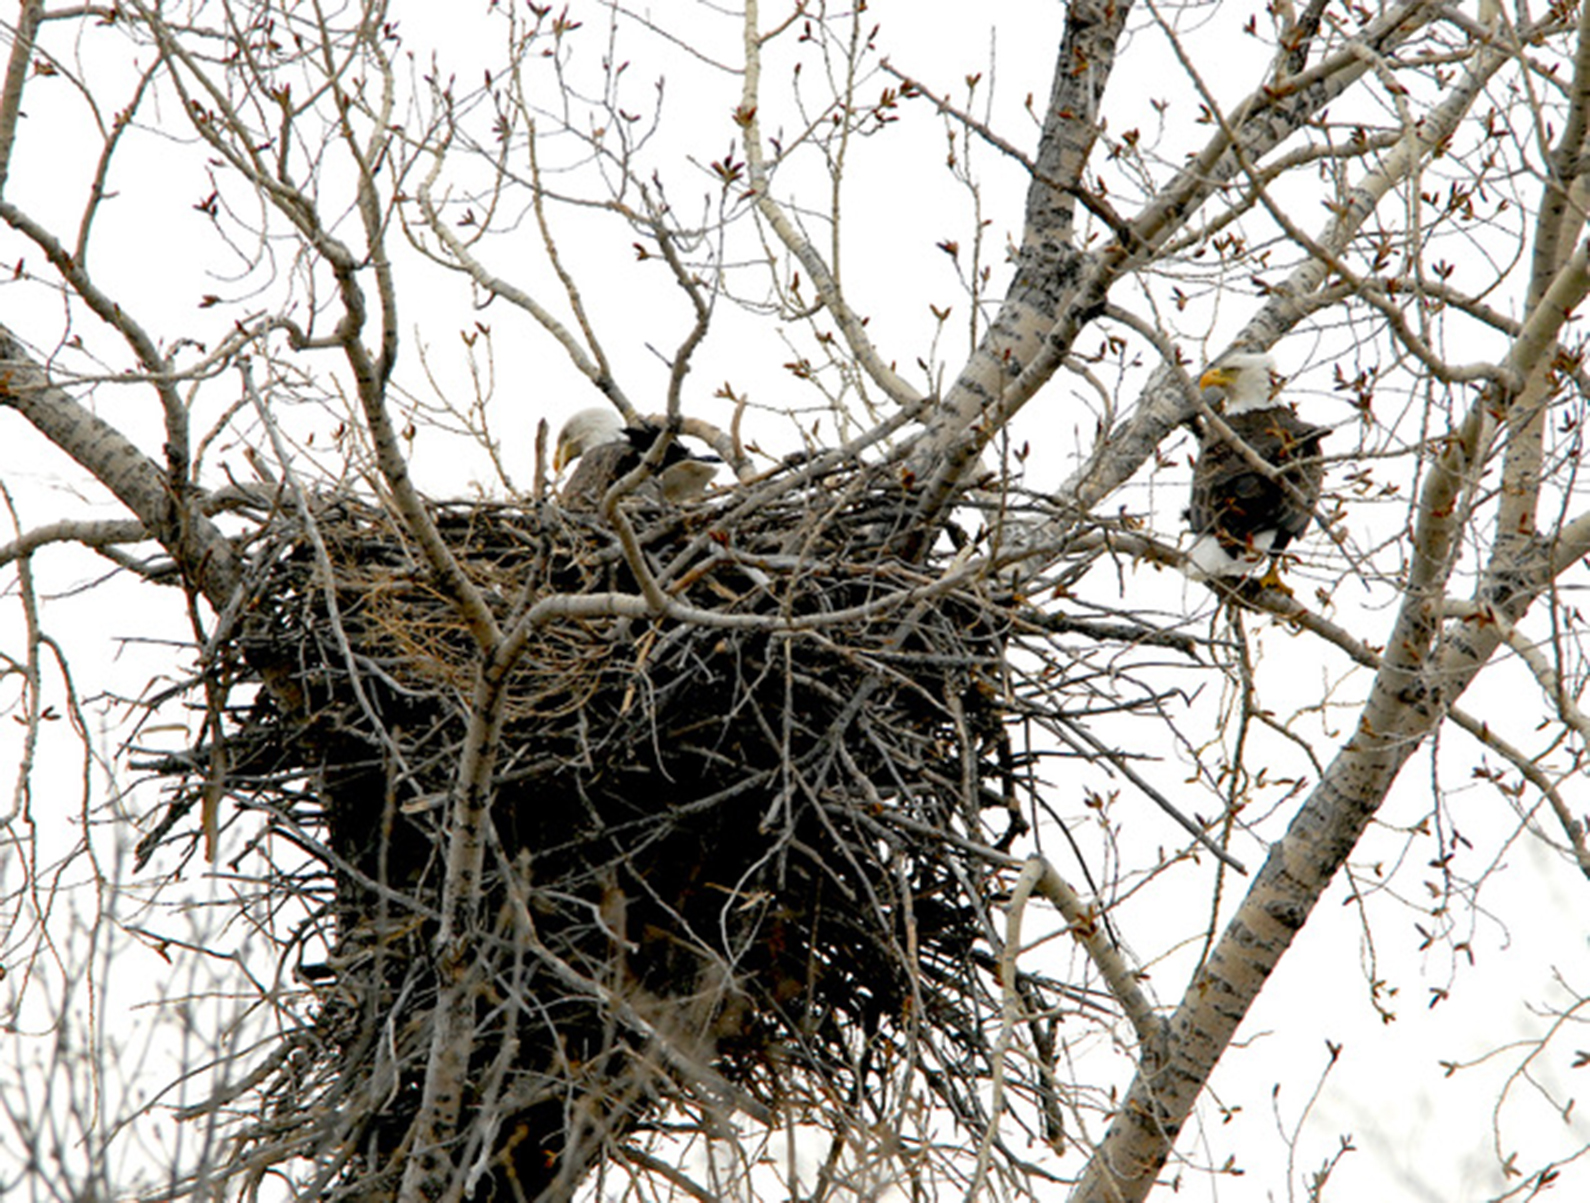 Bald eagles stay close to their nest.